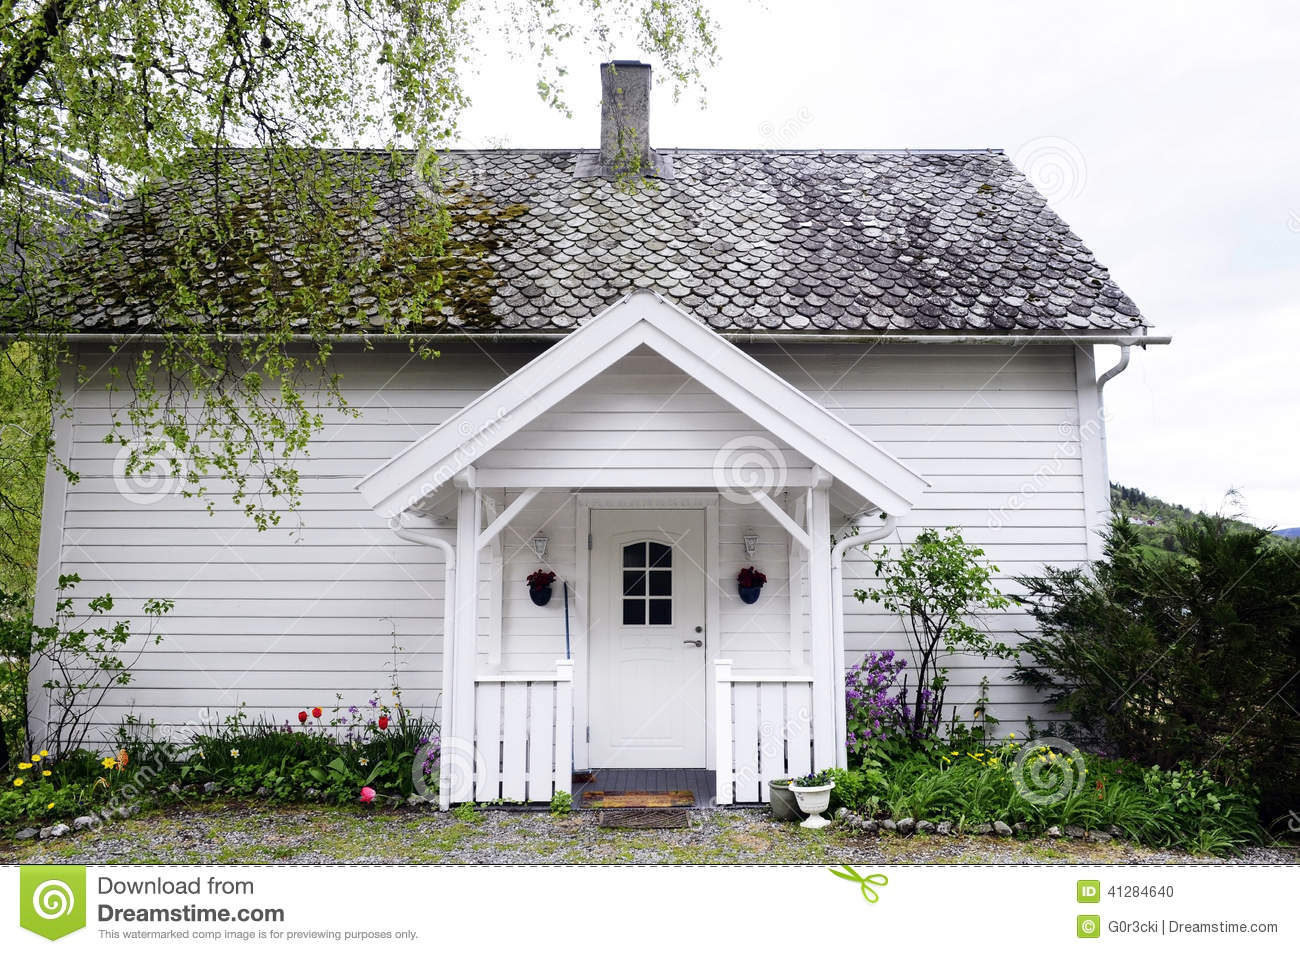 1350 Square Feet 3 Bedrooms 2 Bathroom Traditional House Plans 2 Garage 431 also National Park Log Cabin likewise Zdjcie Stock May Bielu Dom Z Gankiem Frontowym Image41284640 moreover Pine Win ka Siding James Hardie Lap Siding likewise 322851867011897543. on farmhouse porches